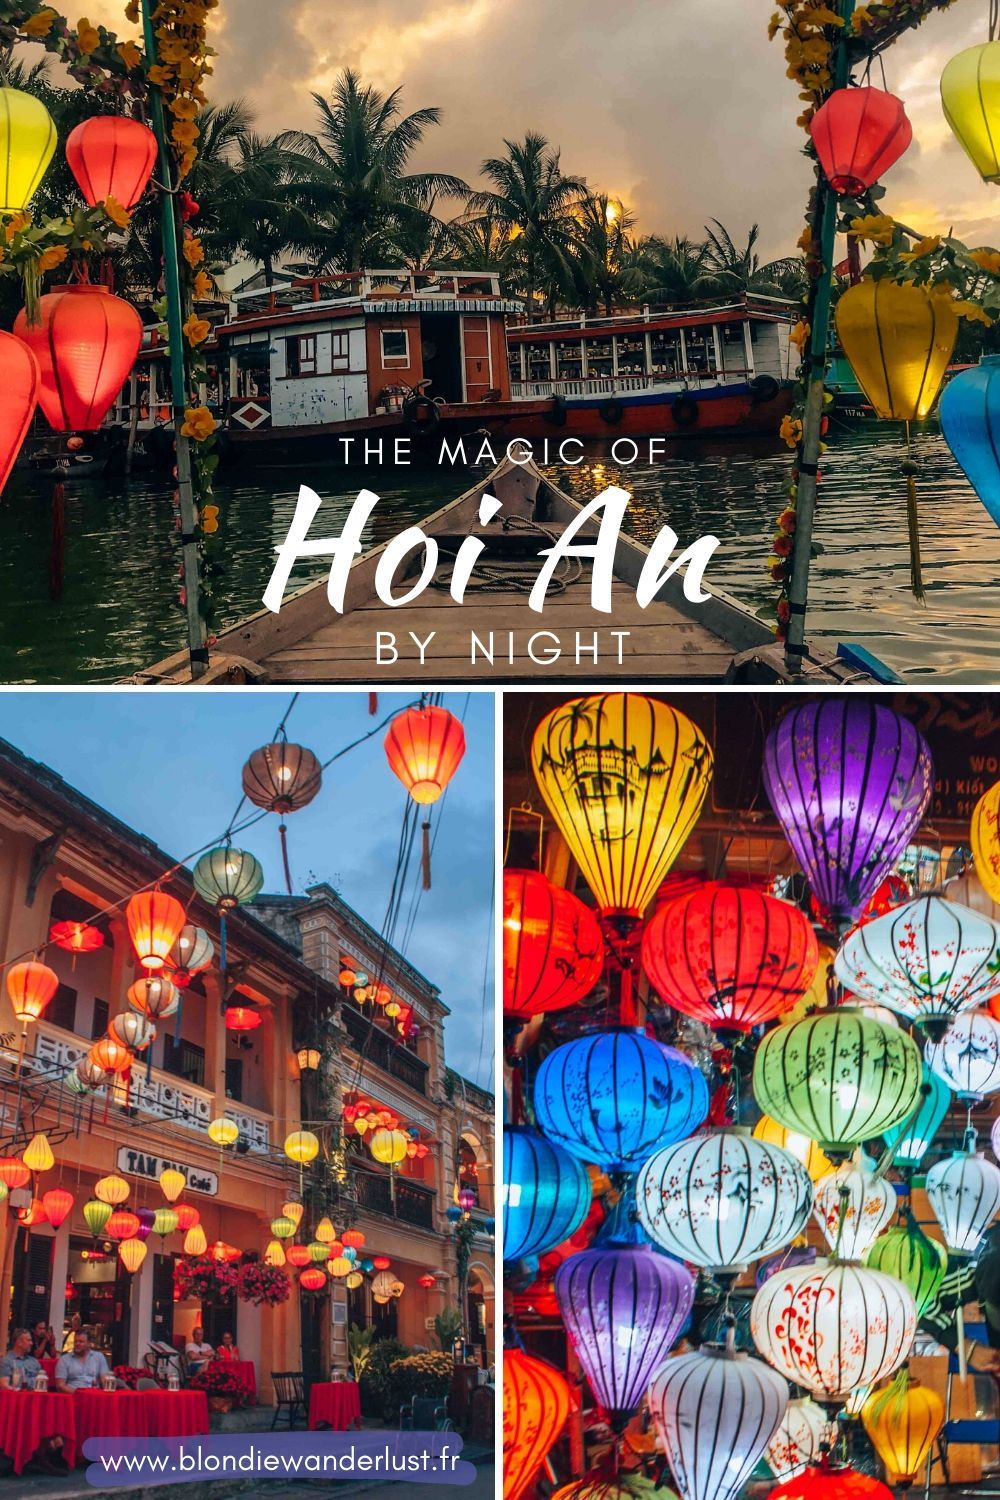 Discover the magic of Hoi An by night in this full guide